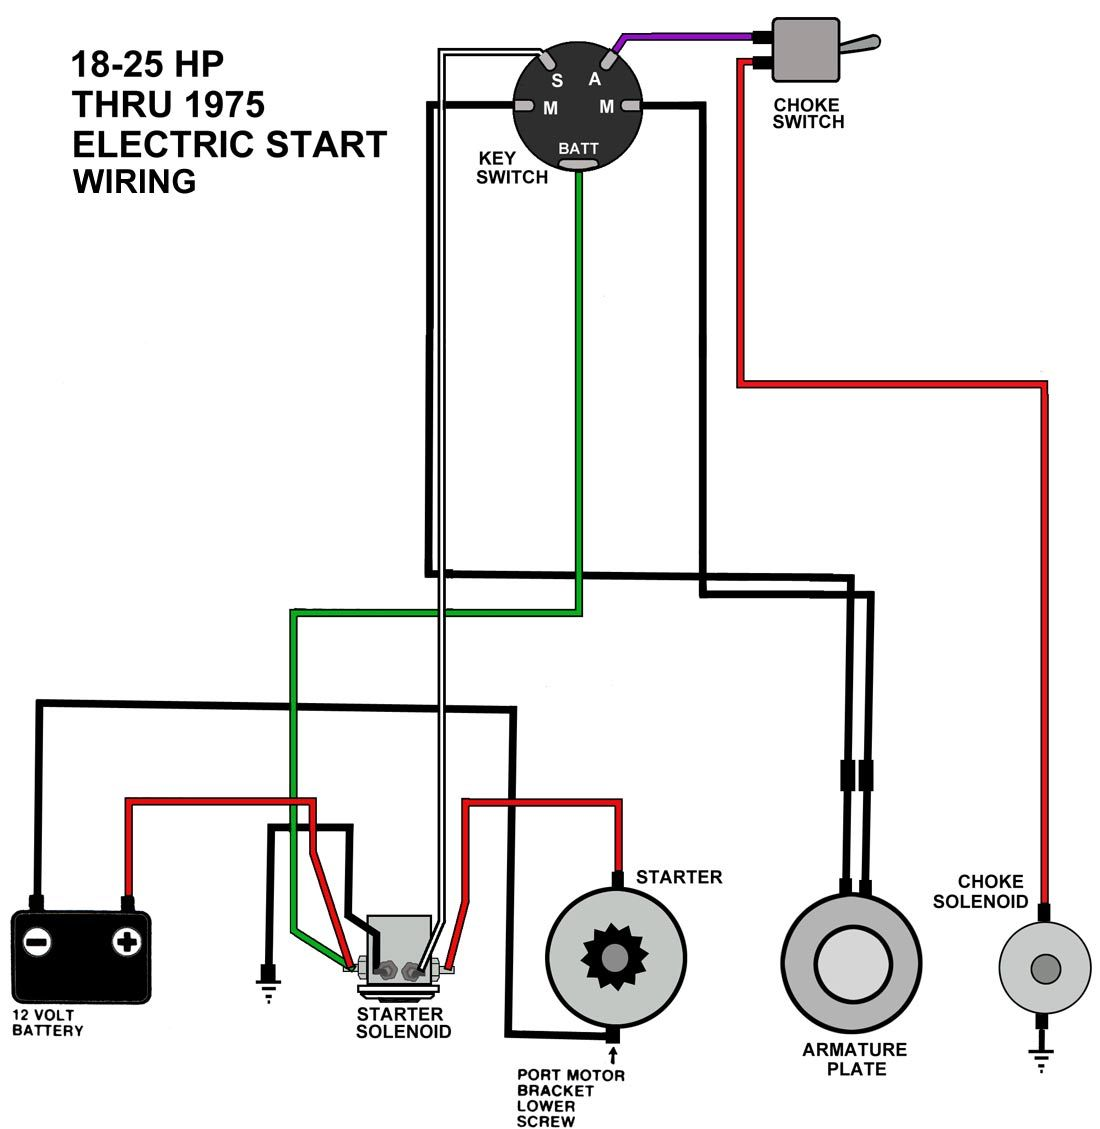 Yanmar Solenoid Wiring Diagram Wiring In 2020 Boat Wiring Trailer Wiring Diagram Kill Switch